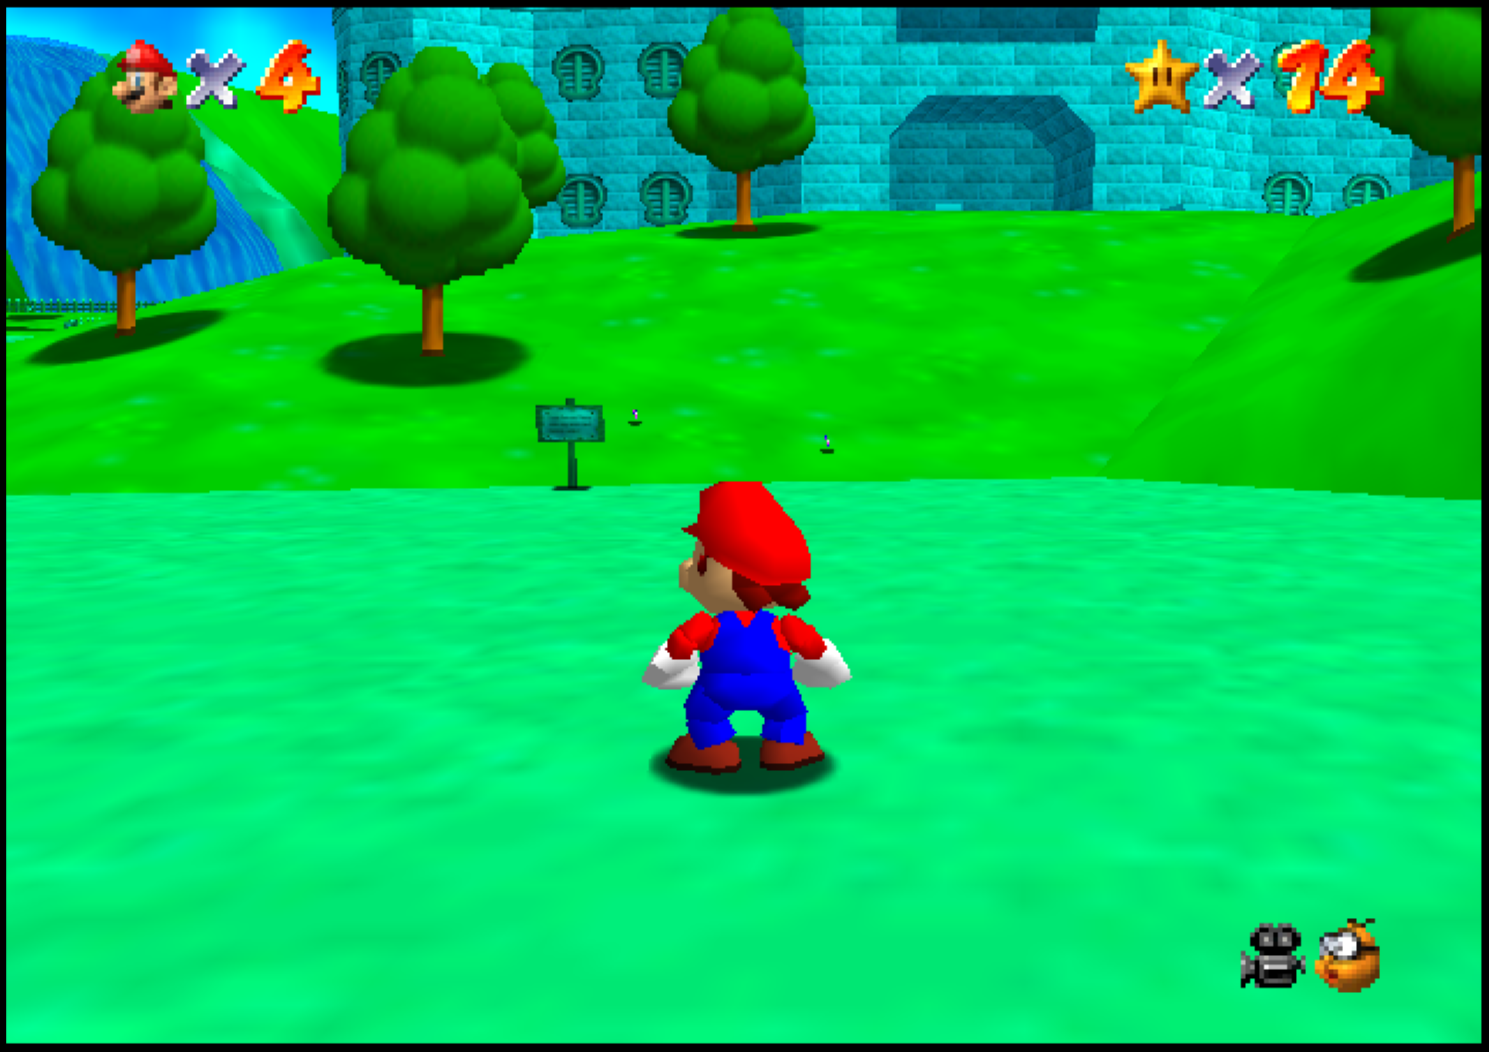 Super Mario 64 - green textures on Intel Iris Pro GPU